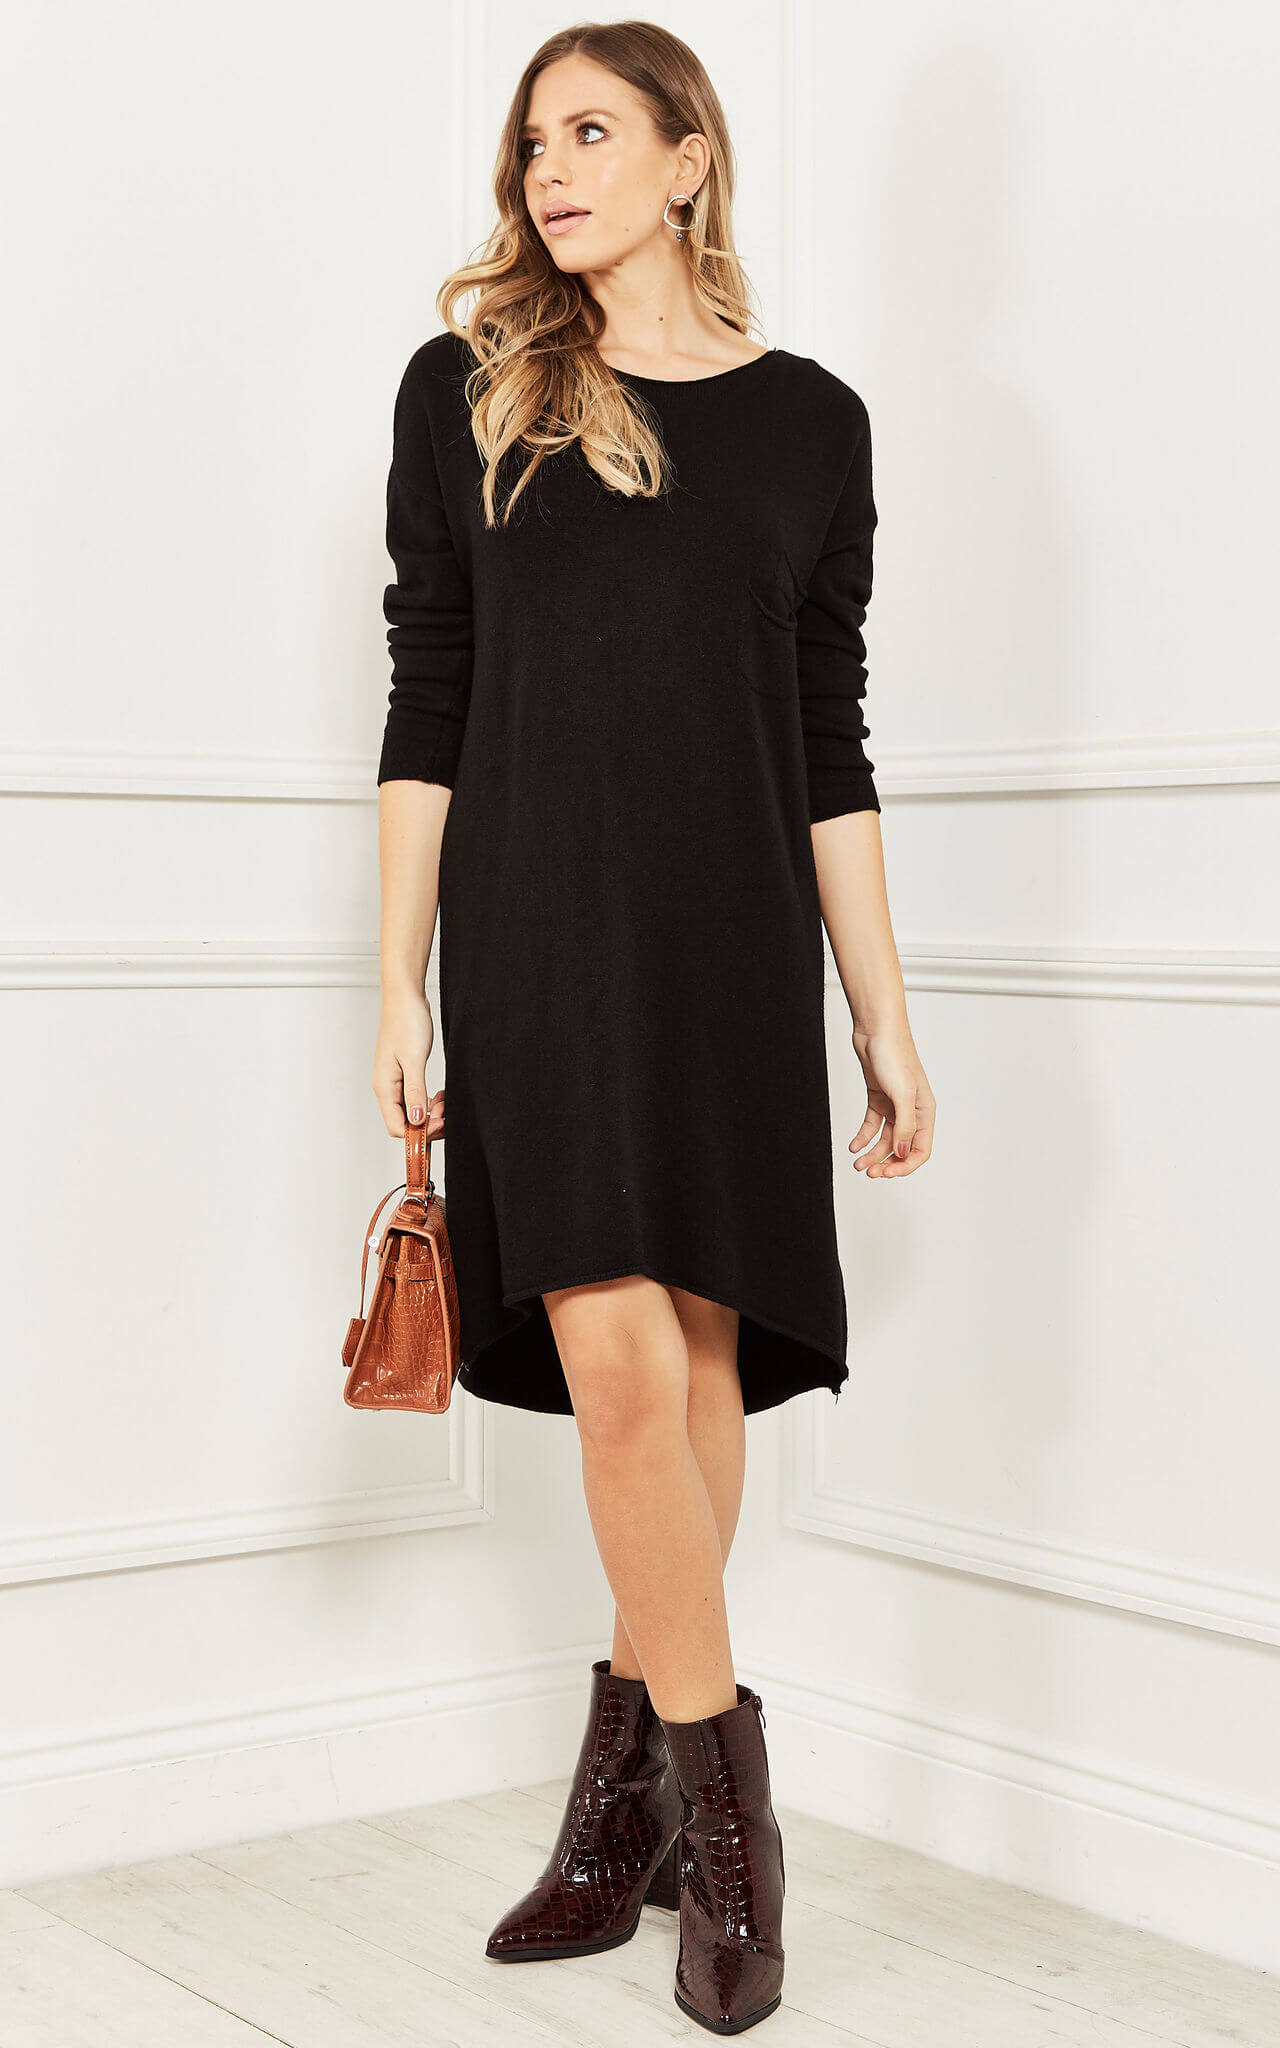 Model wears a black long sleeve knitted dress with pockets with brown ankle boots